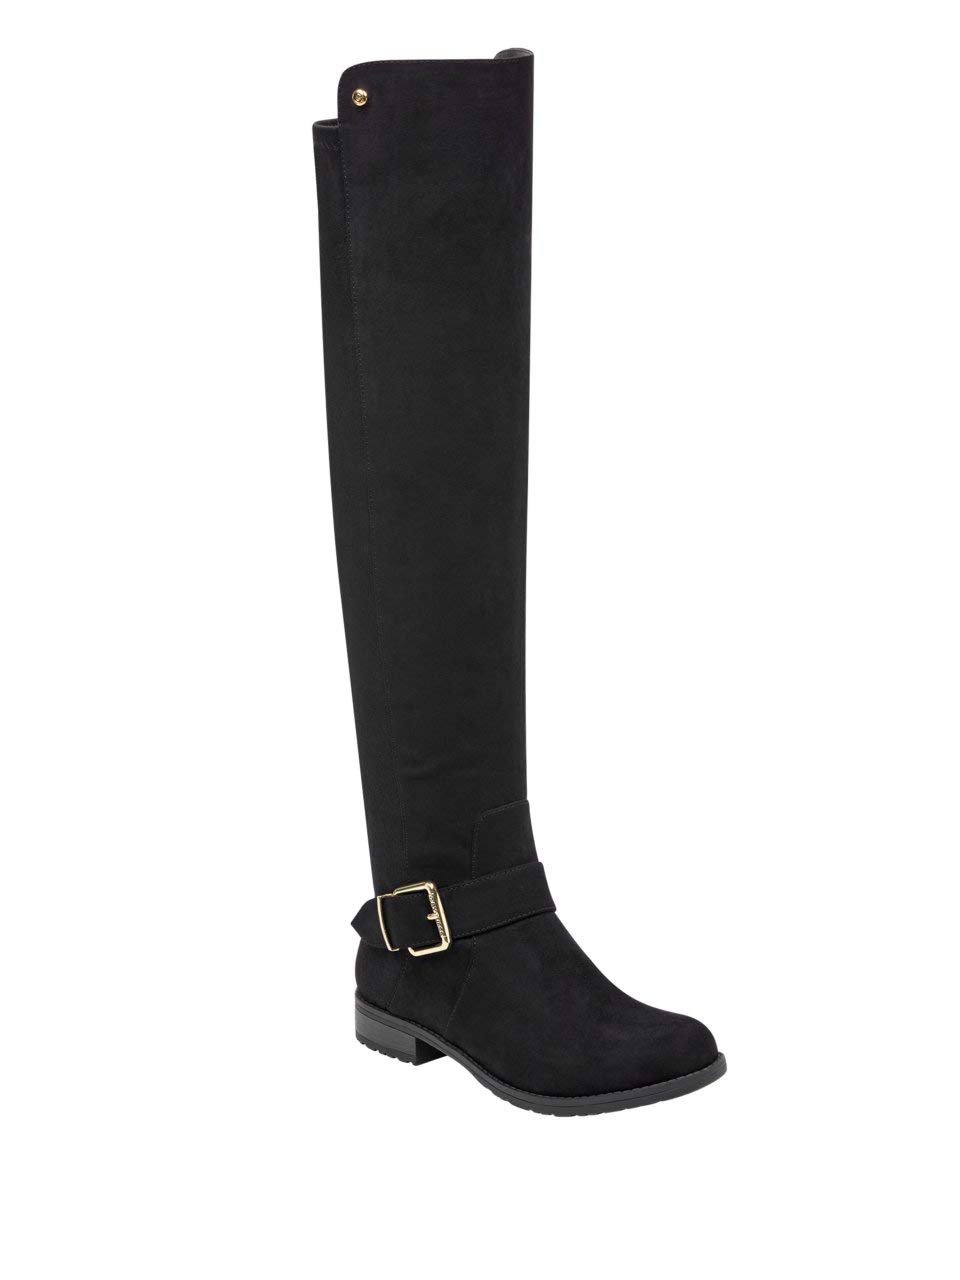 G By Guess Cory Over-The-Knee Riding Boots by G By Guess